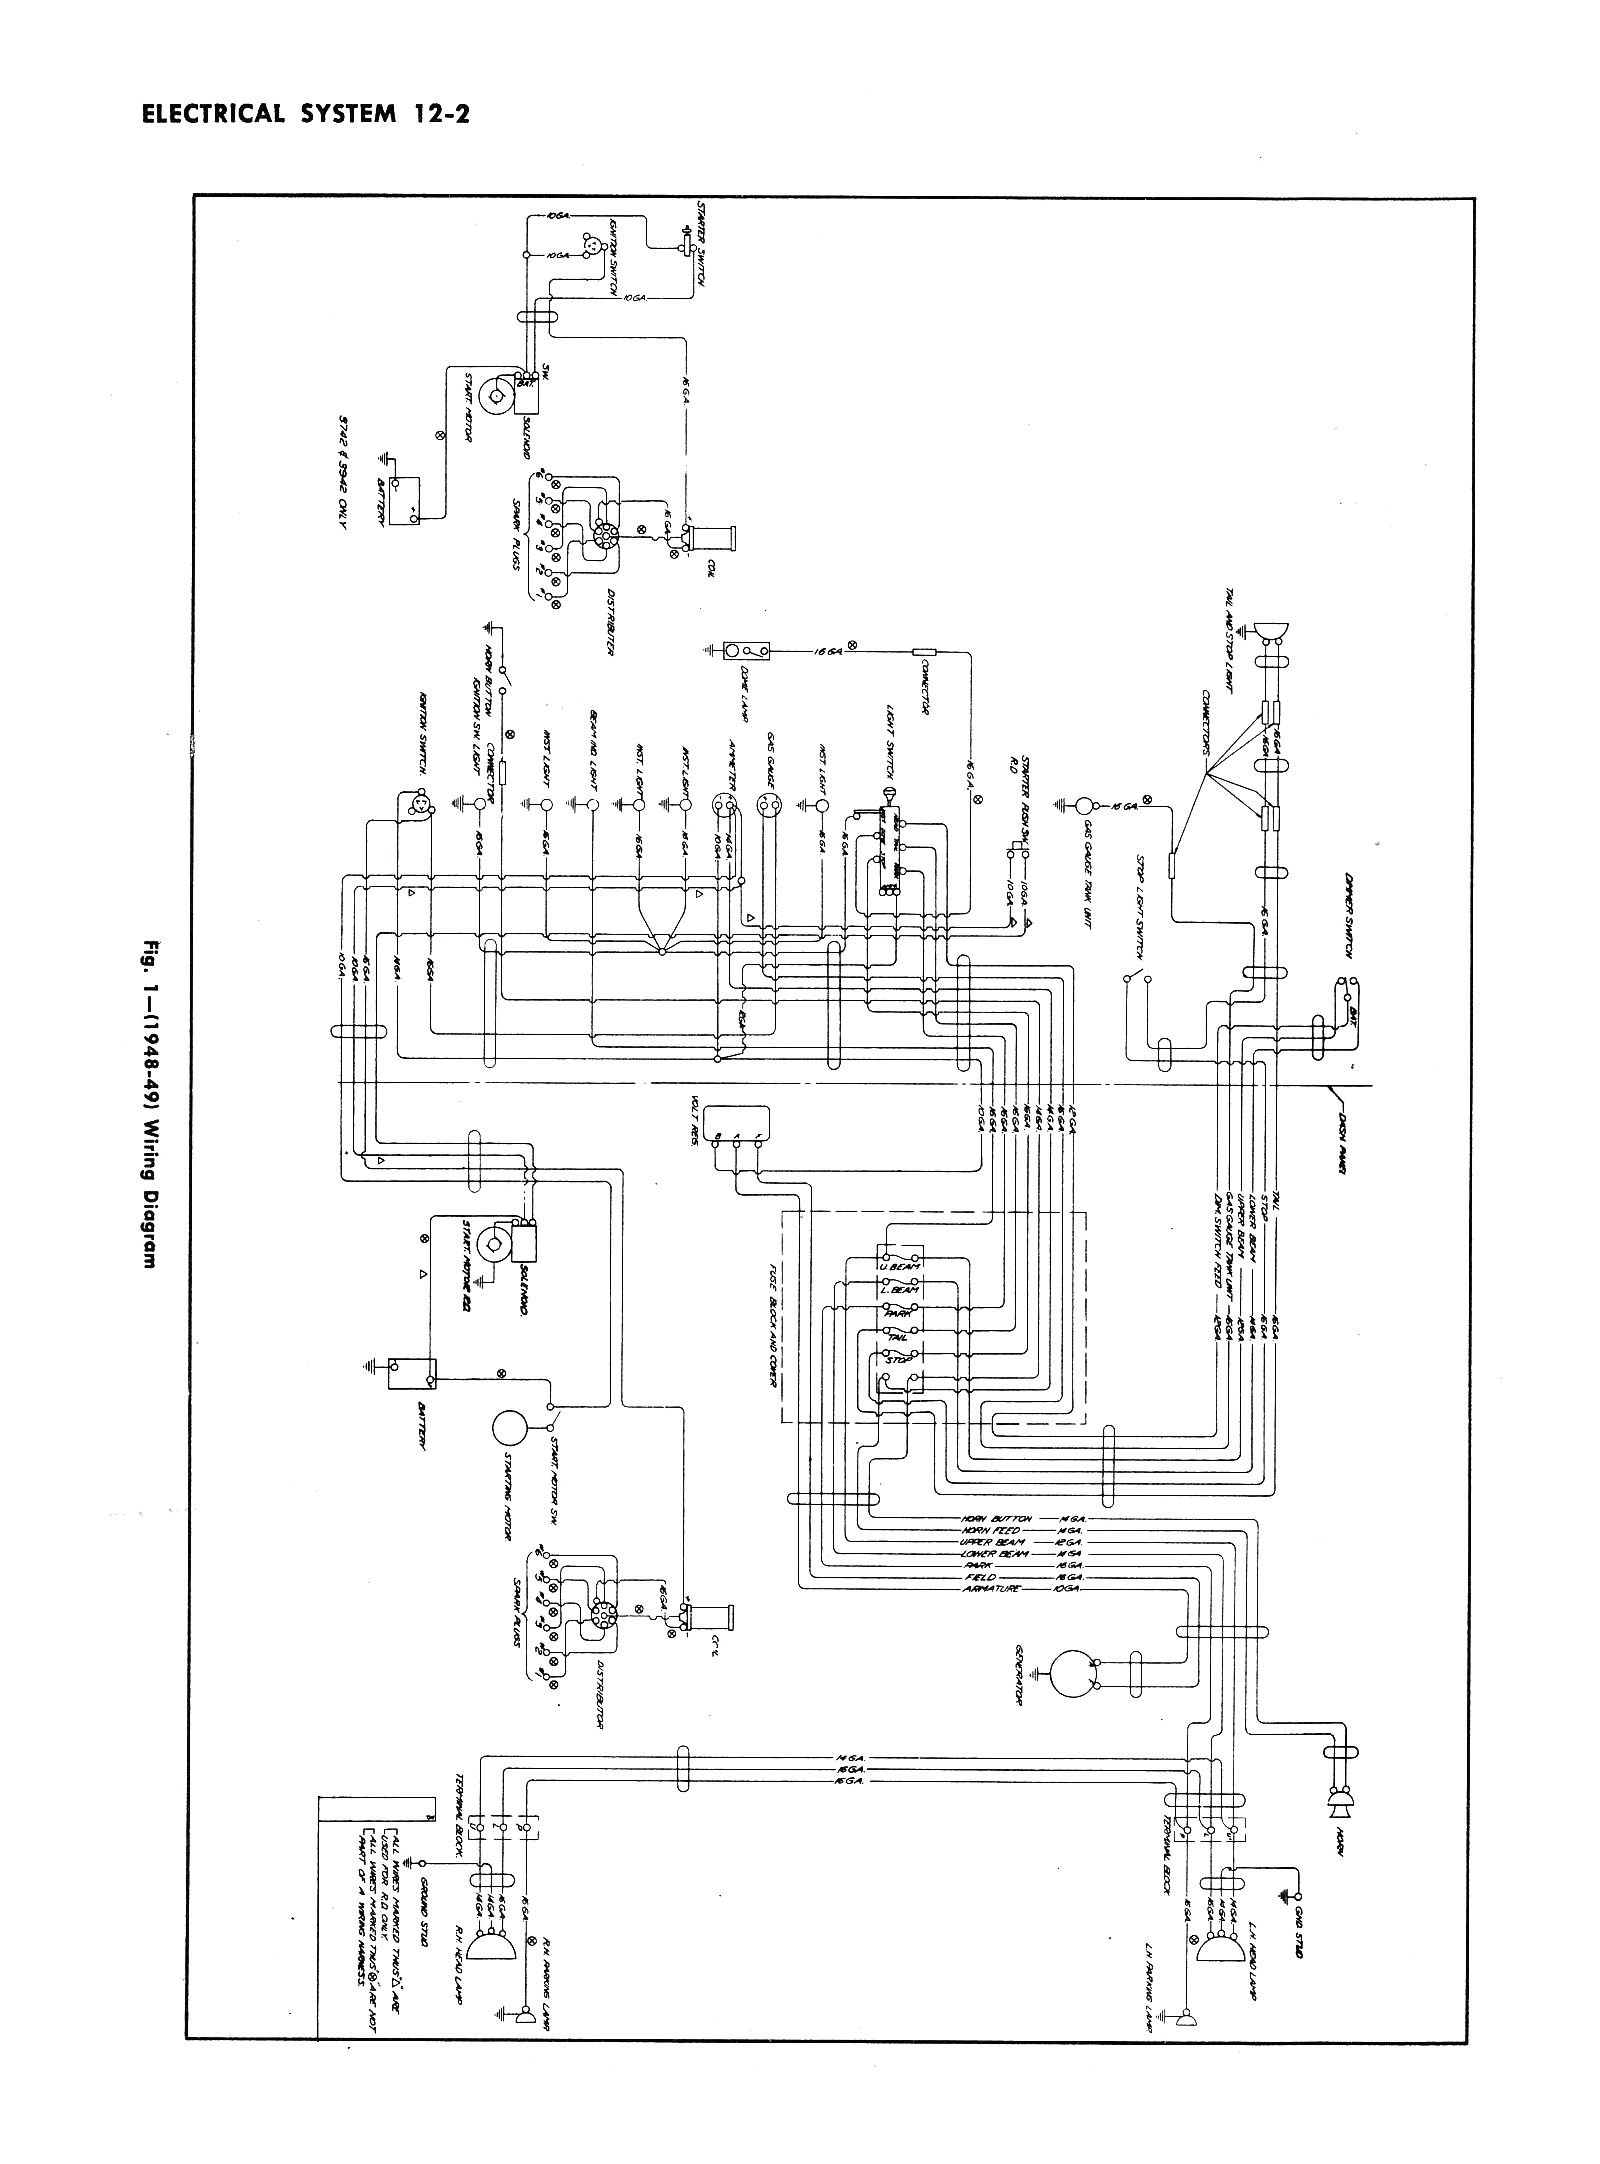 1998 chevrolet p30 chassis wiring diagram